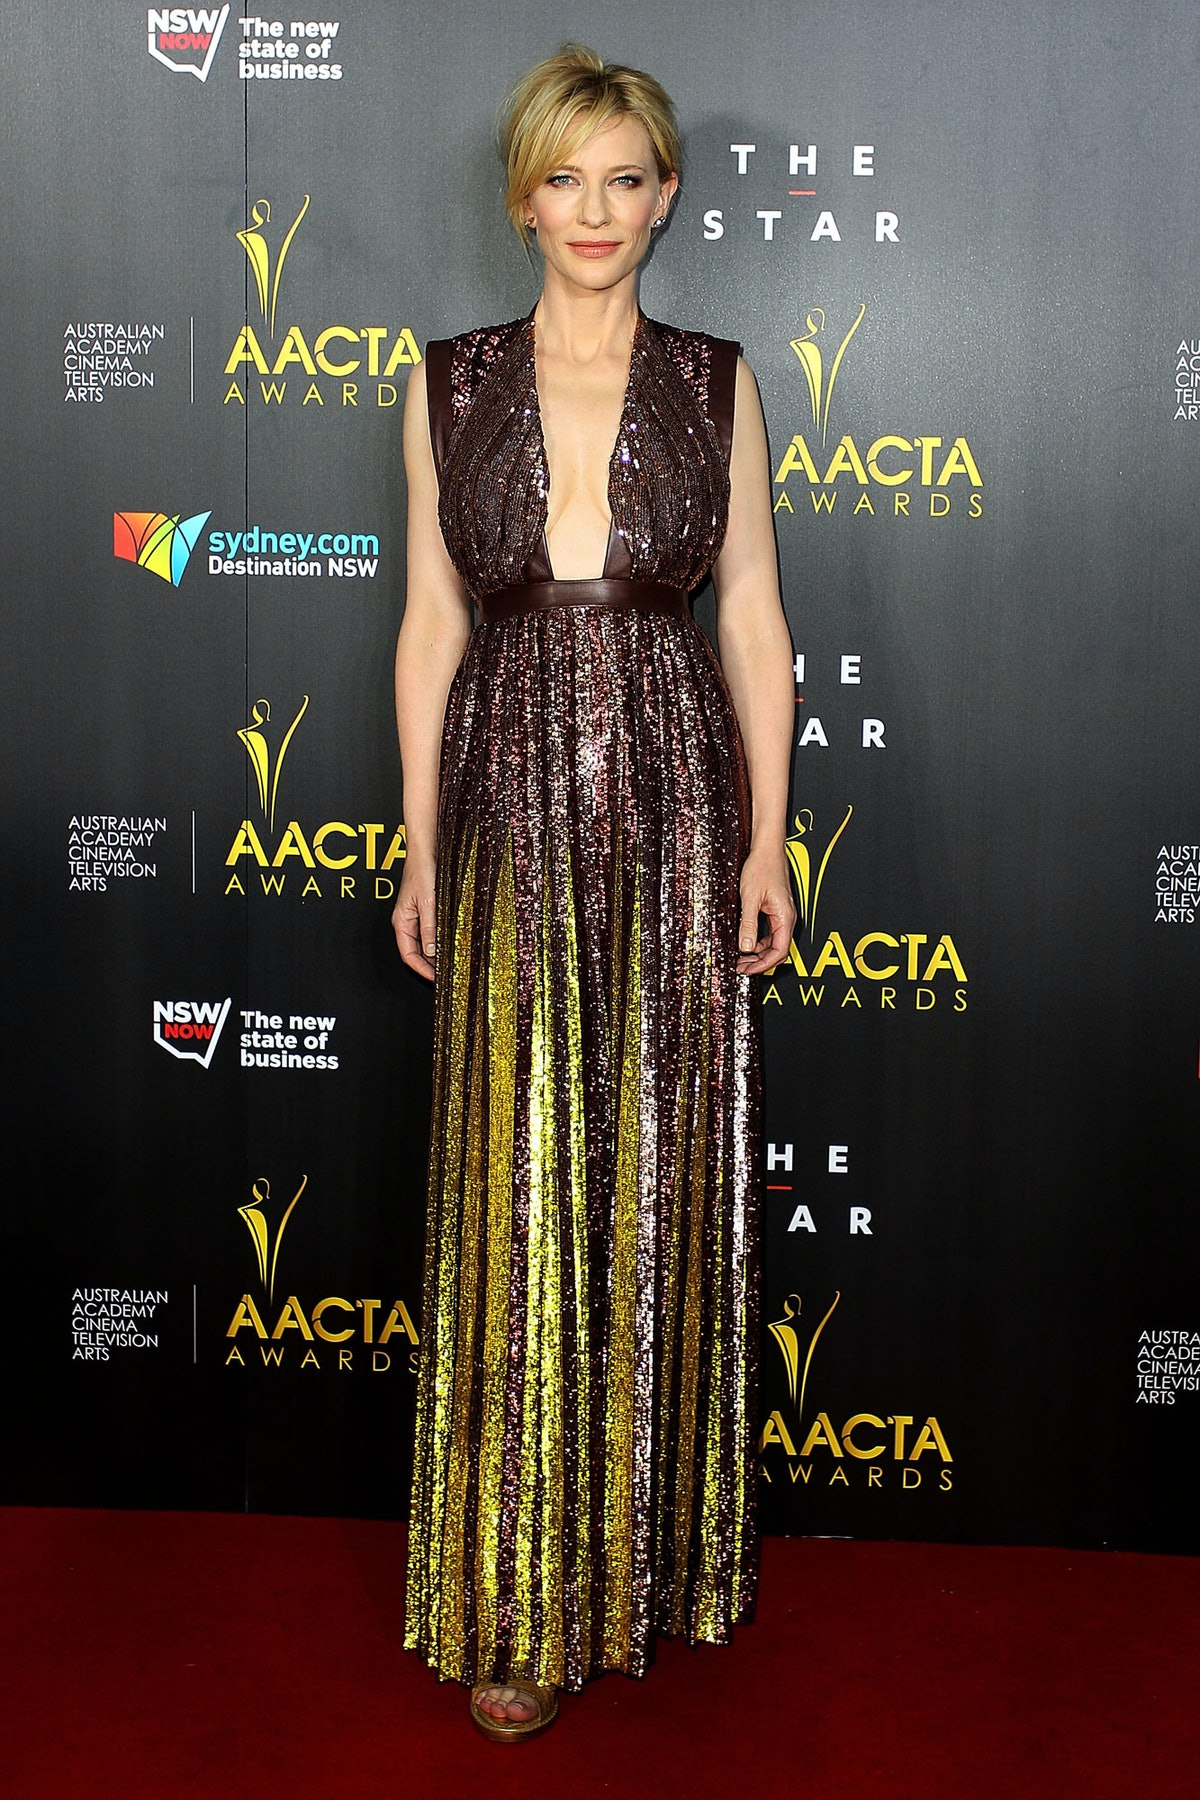 Ever the style chameleon, Blanchett opted for a shimmering [Givenchy](http://www.wmagazine.com/fashi...